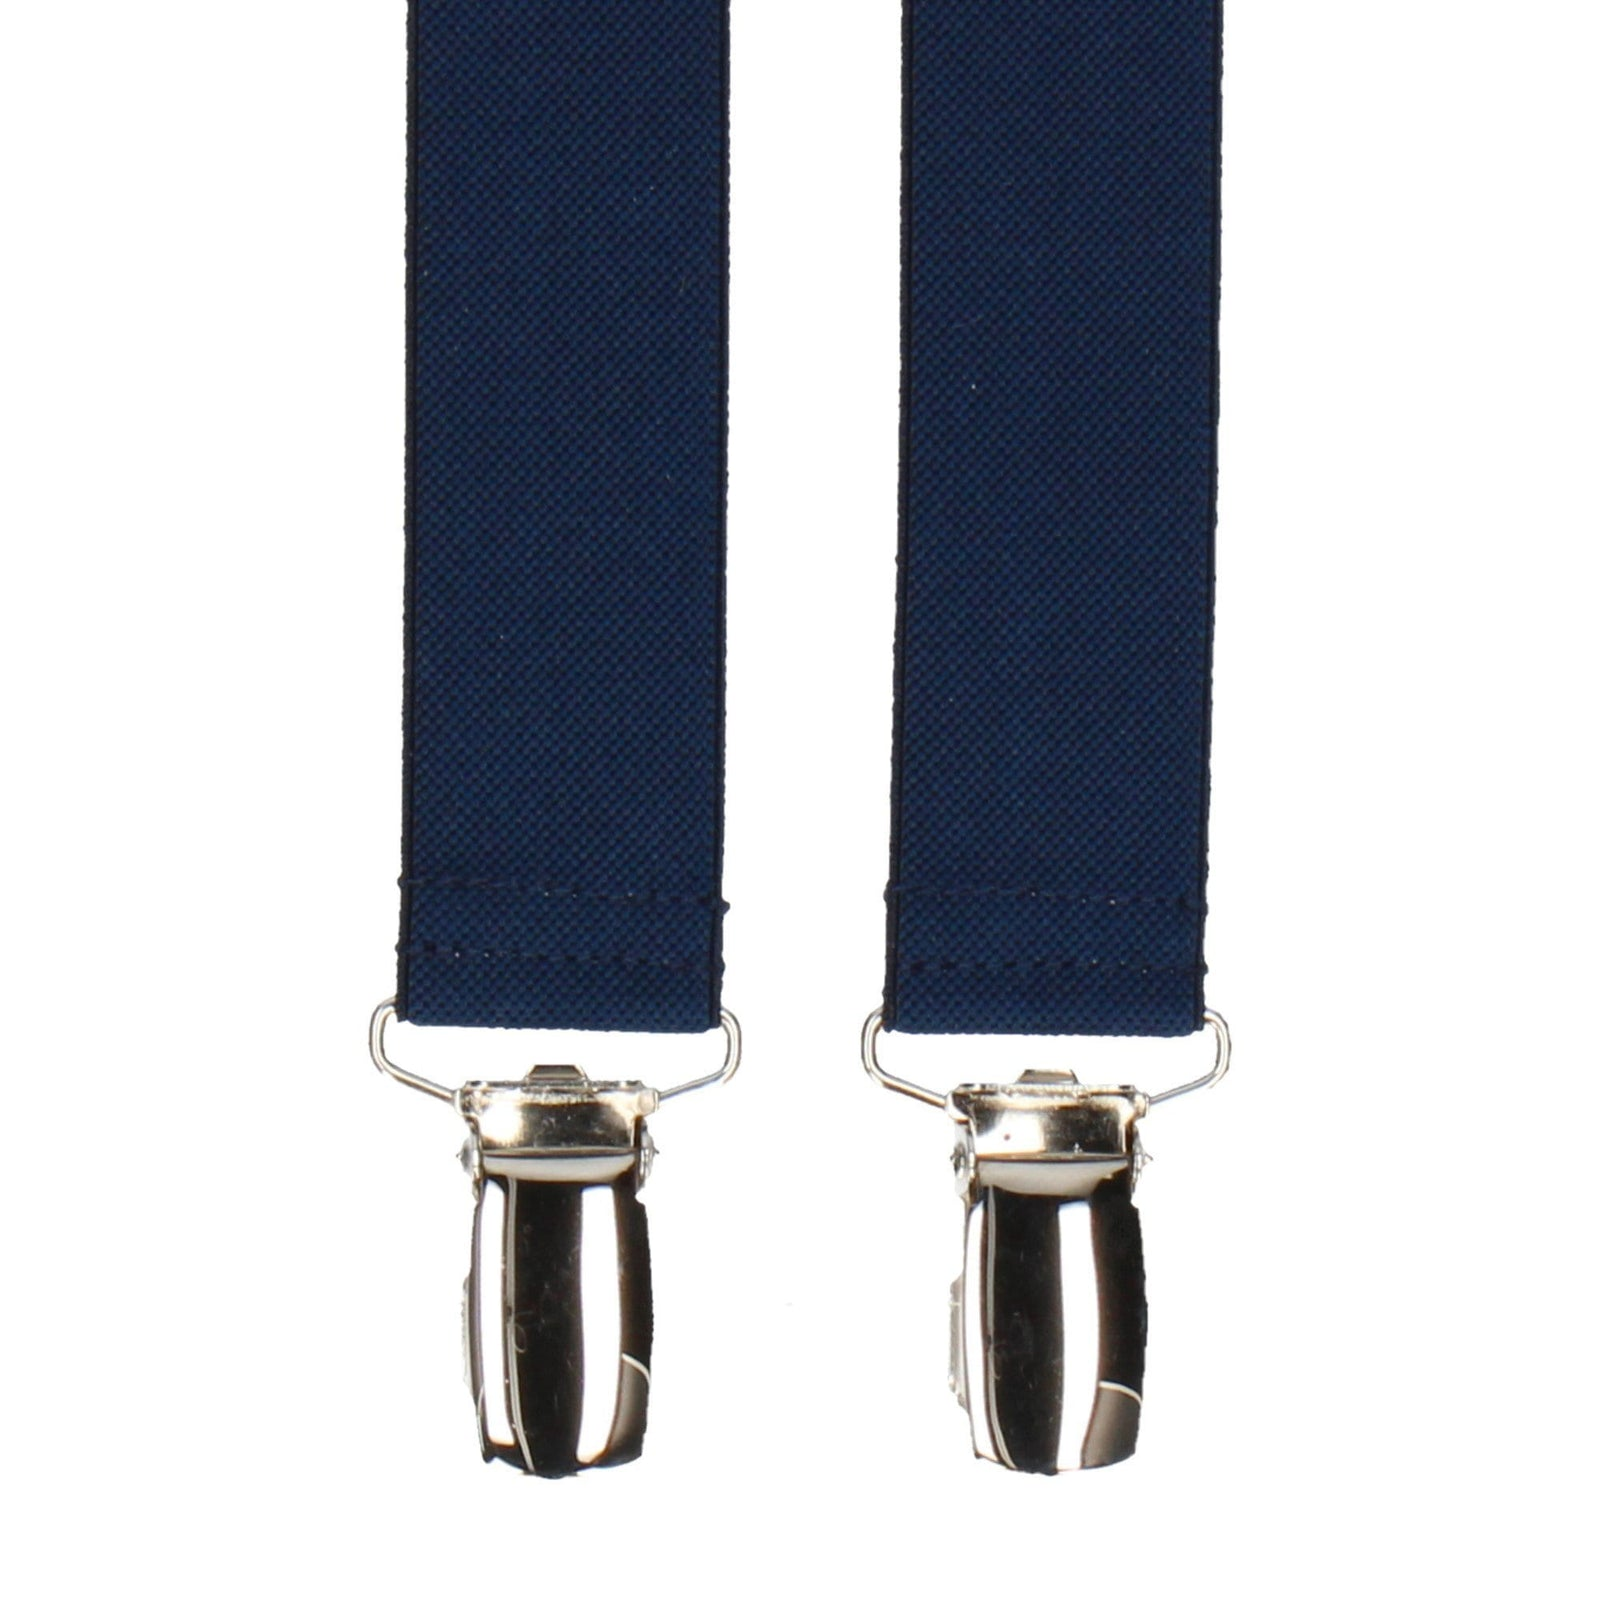 Classic in French Navy Braces